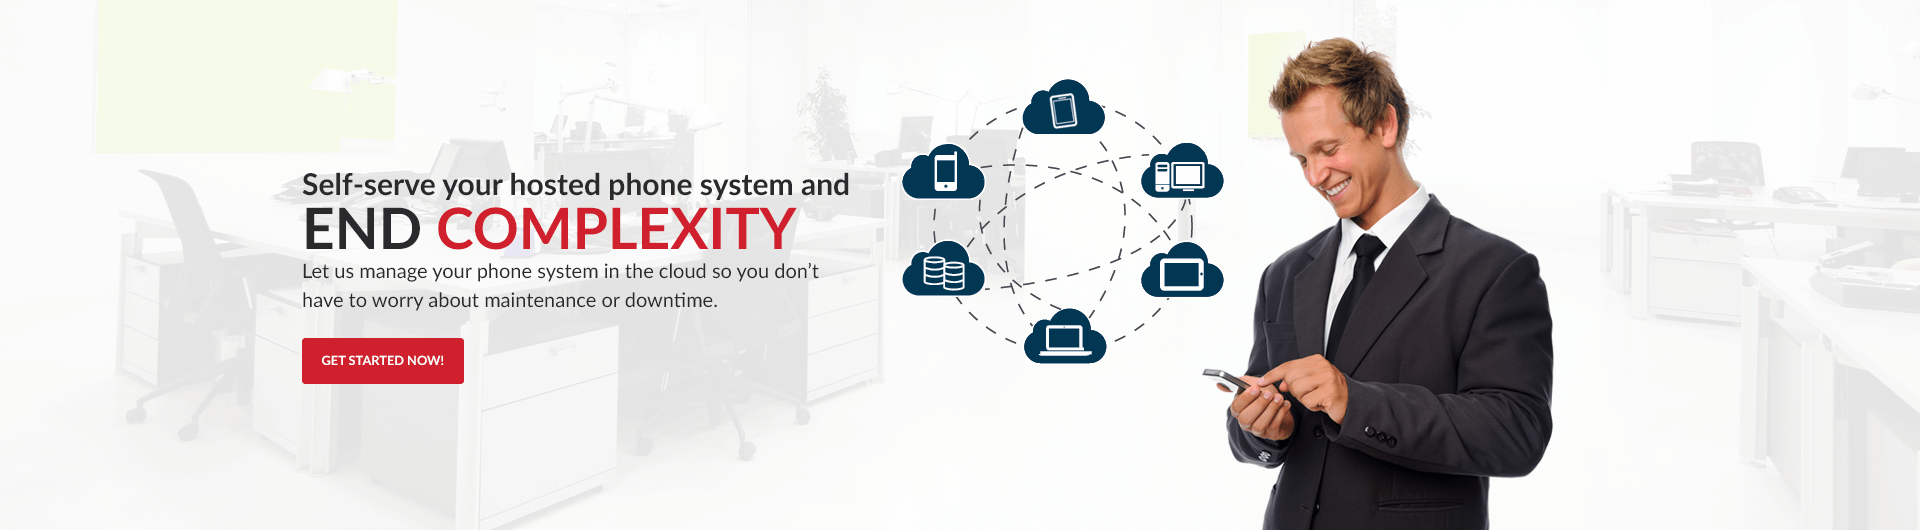 Self serve your hosted phone system and manage it in the cloud so you dont have to worry about maintenance or downtime